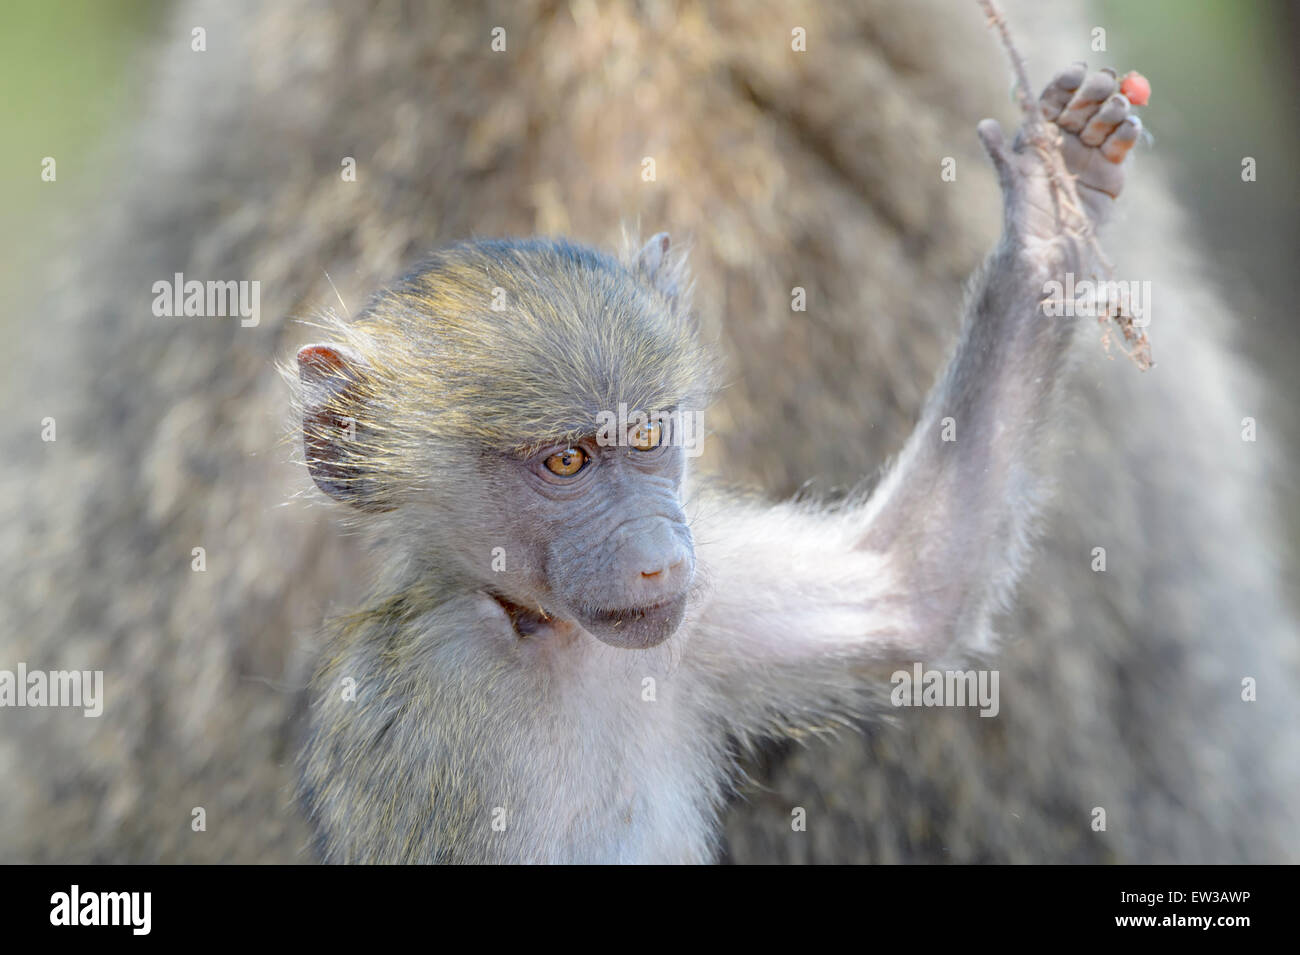 Olive Baboon (Papio anubis) juvenile portrait, playing with branch, Lake Manyara National Park, Tanzania - Stock Image